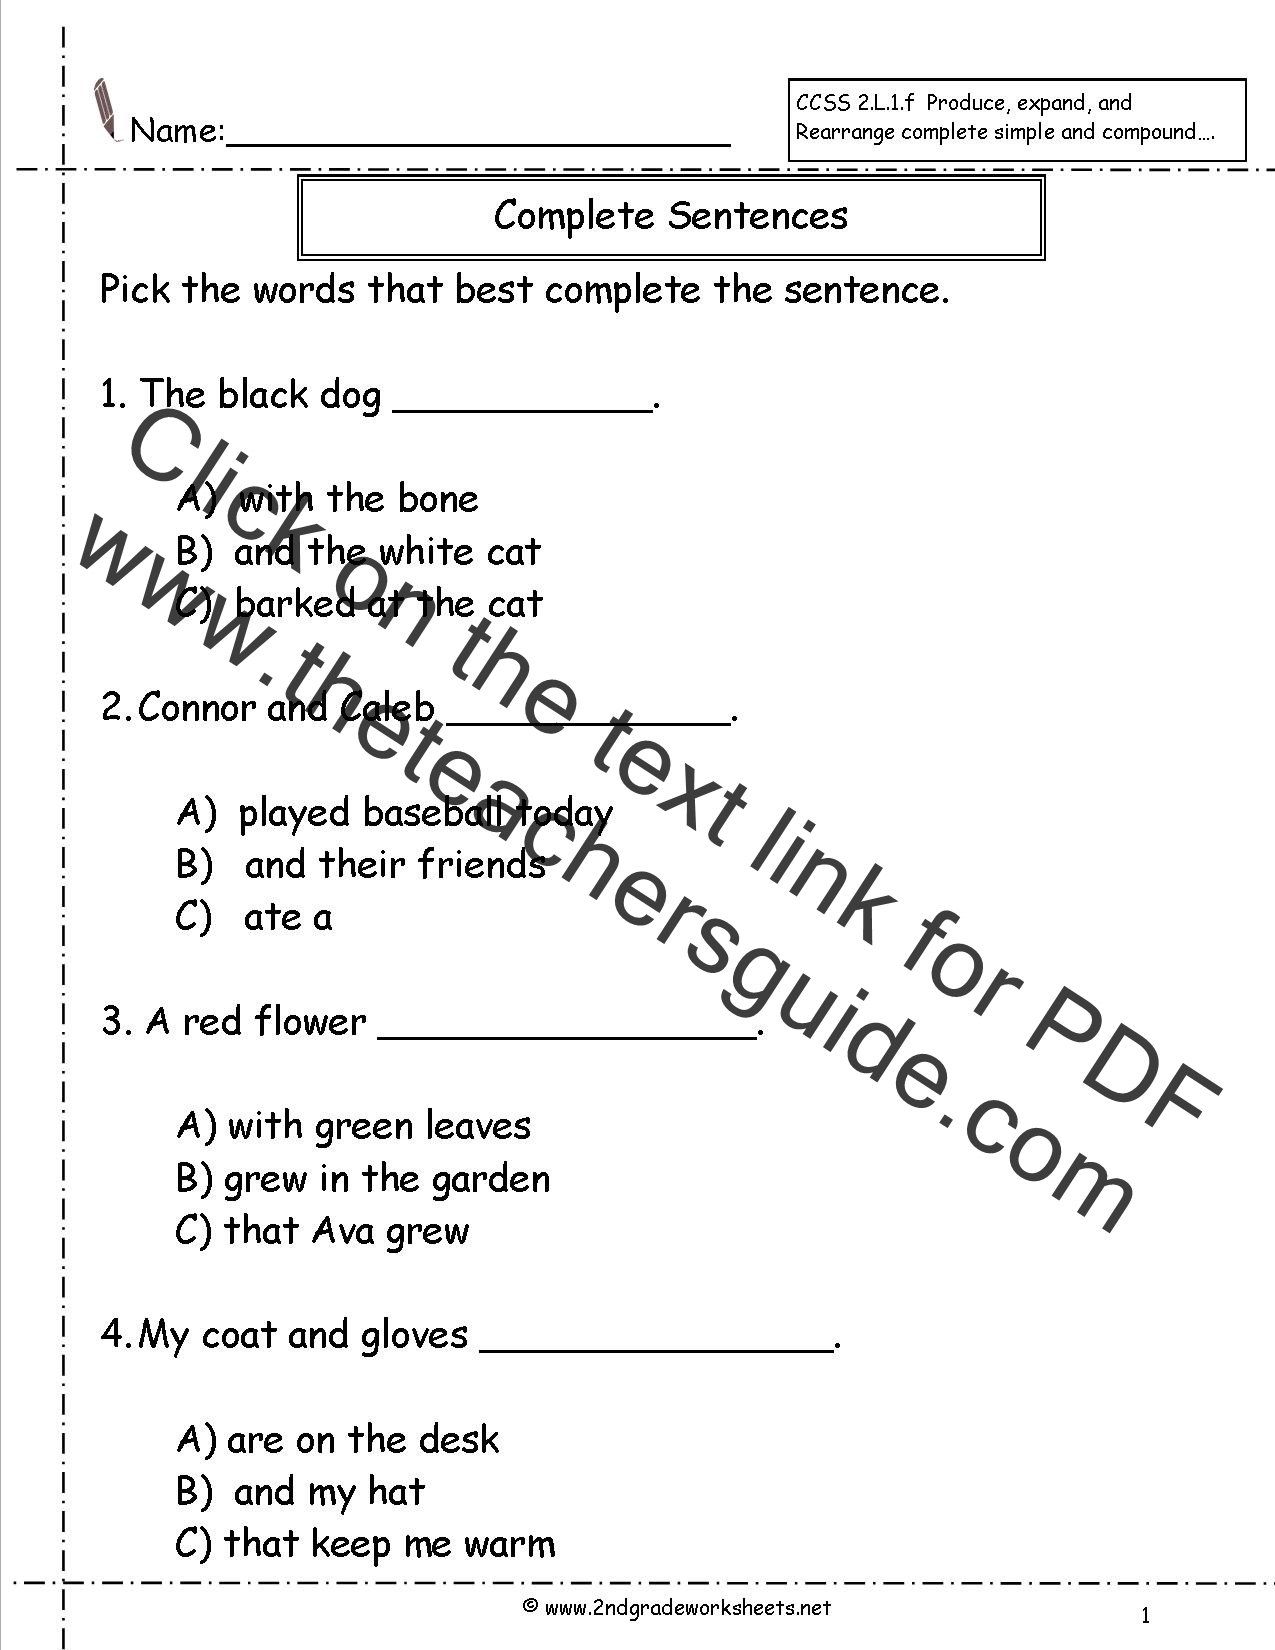 Complete sentences worksheets